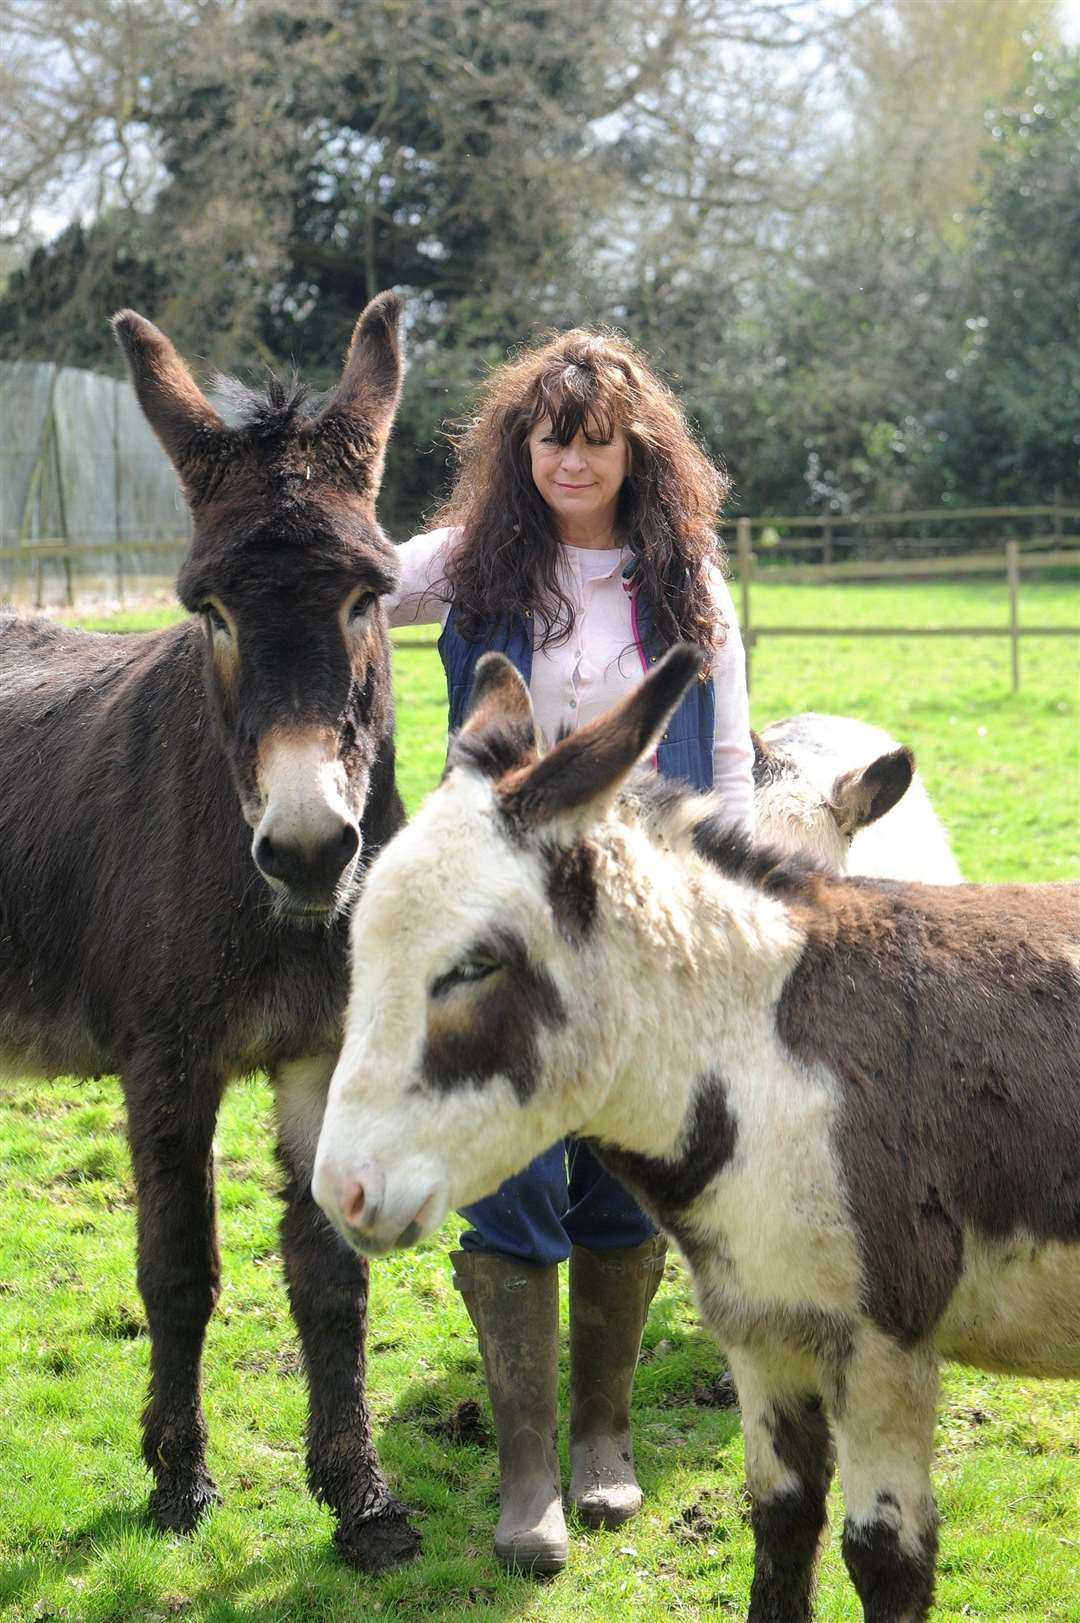 Frenchs Care Haven has launched an appeal for a new site after having just weeks to vacate. Founder Jann Turner is hoping to secure a new site in Hadleigh for the donkeys and horses she cares for at the centre....PICTURE: Mecha Morton. .. (14862897)